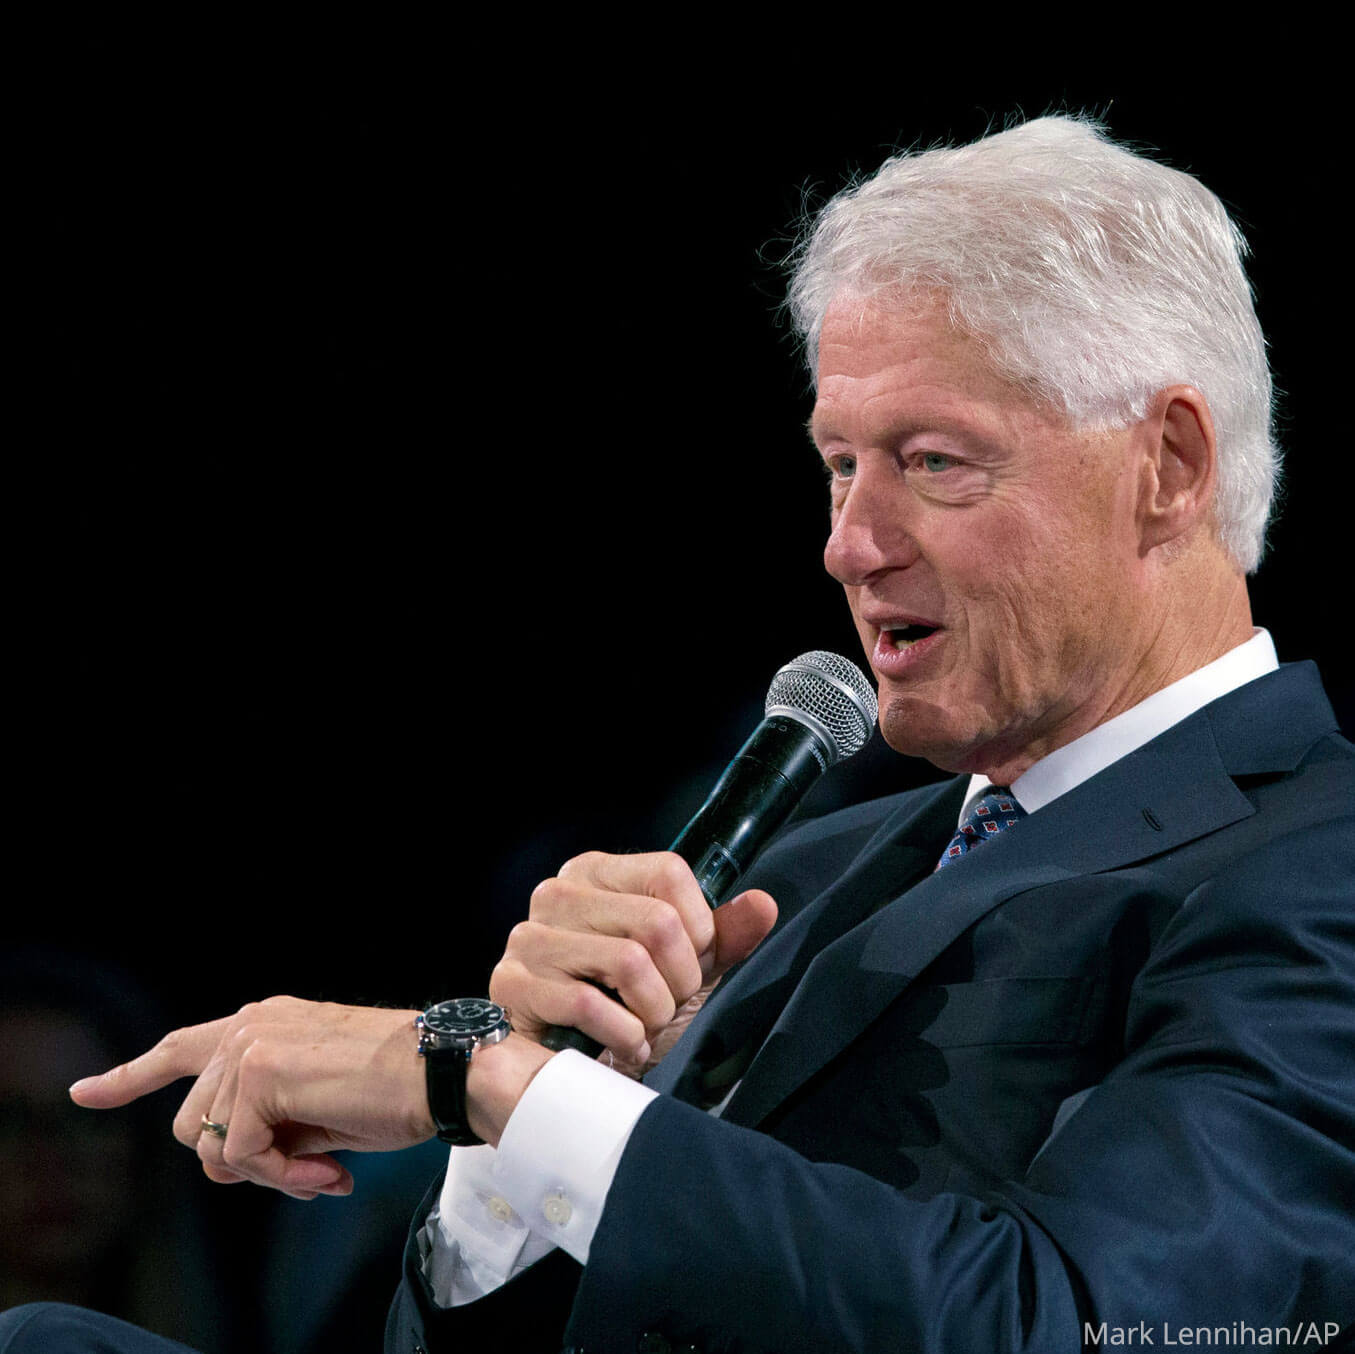 President Bill Clinton wearing a A. Lange & Söhne's Richard Lange Pour Le Mérite at the 2018 Bloomberg Global Business Forum in New York